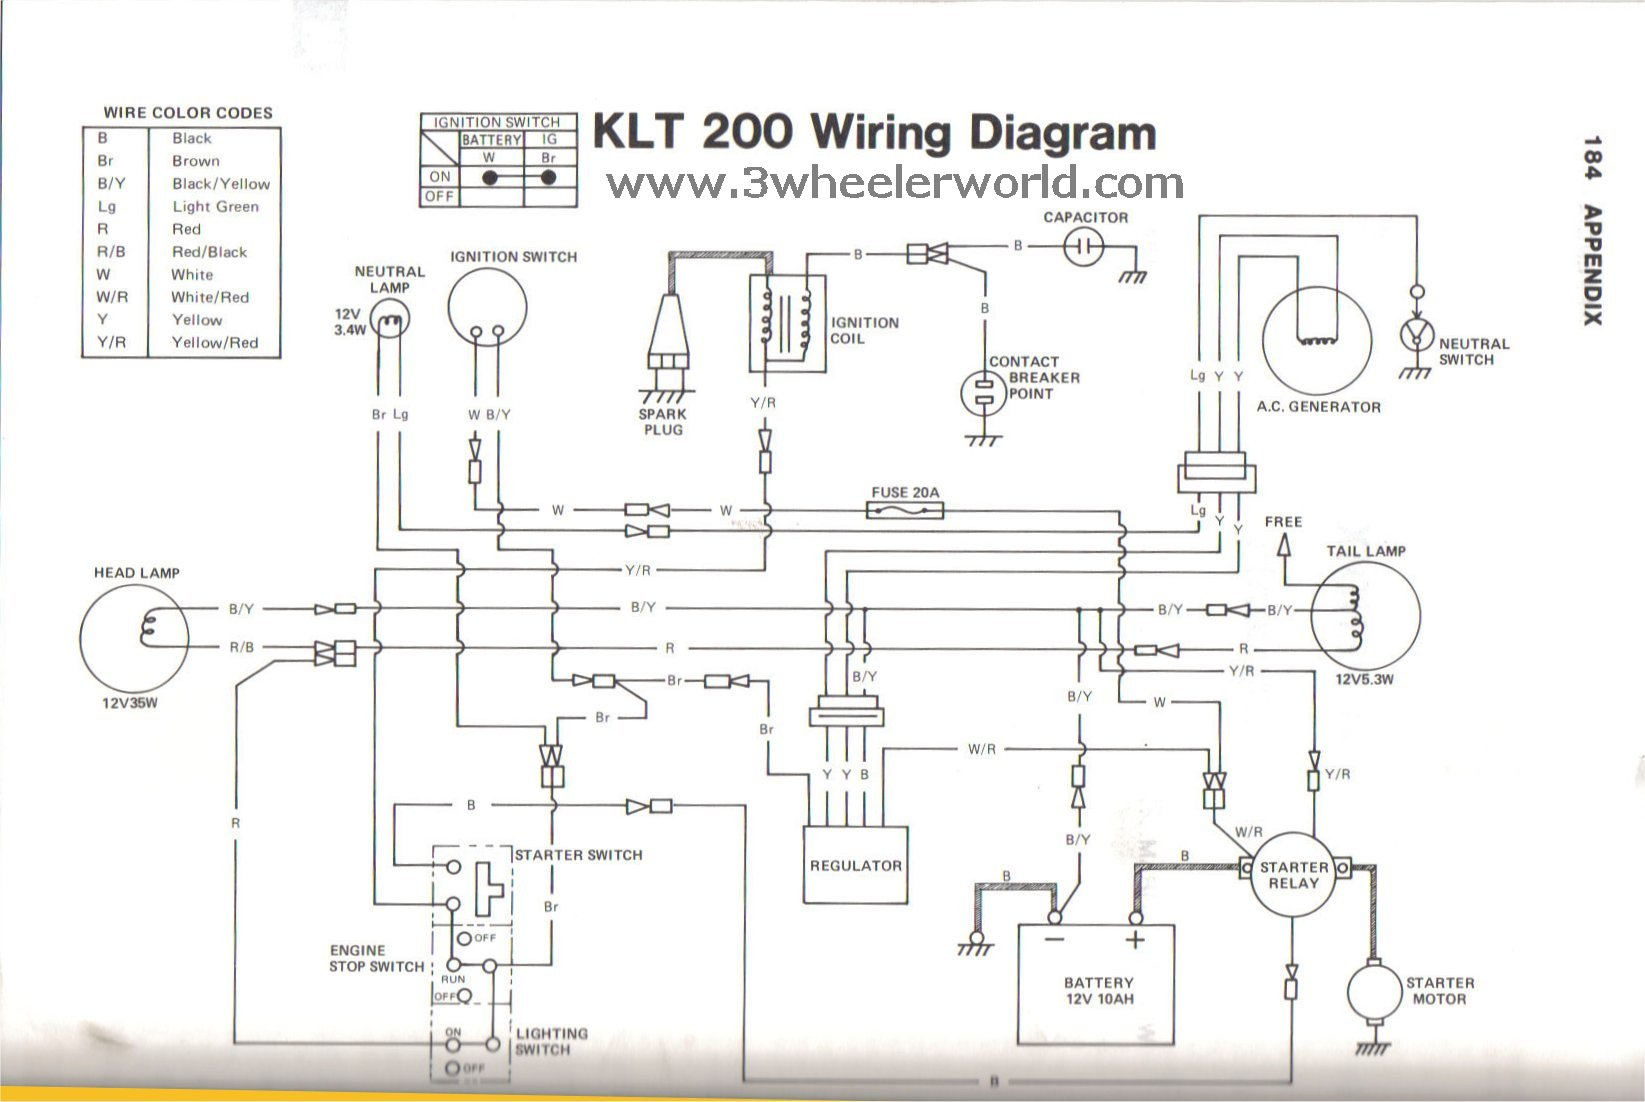 KLT200WiringDiagram1 kawasaki wiring diagram atv kawasaki wiring diagrams instruction  at gsmx.co